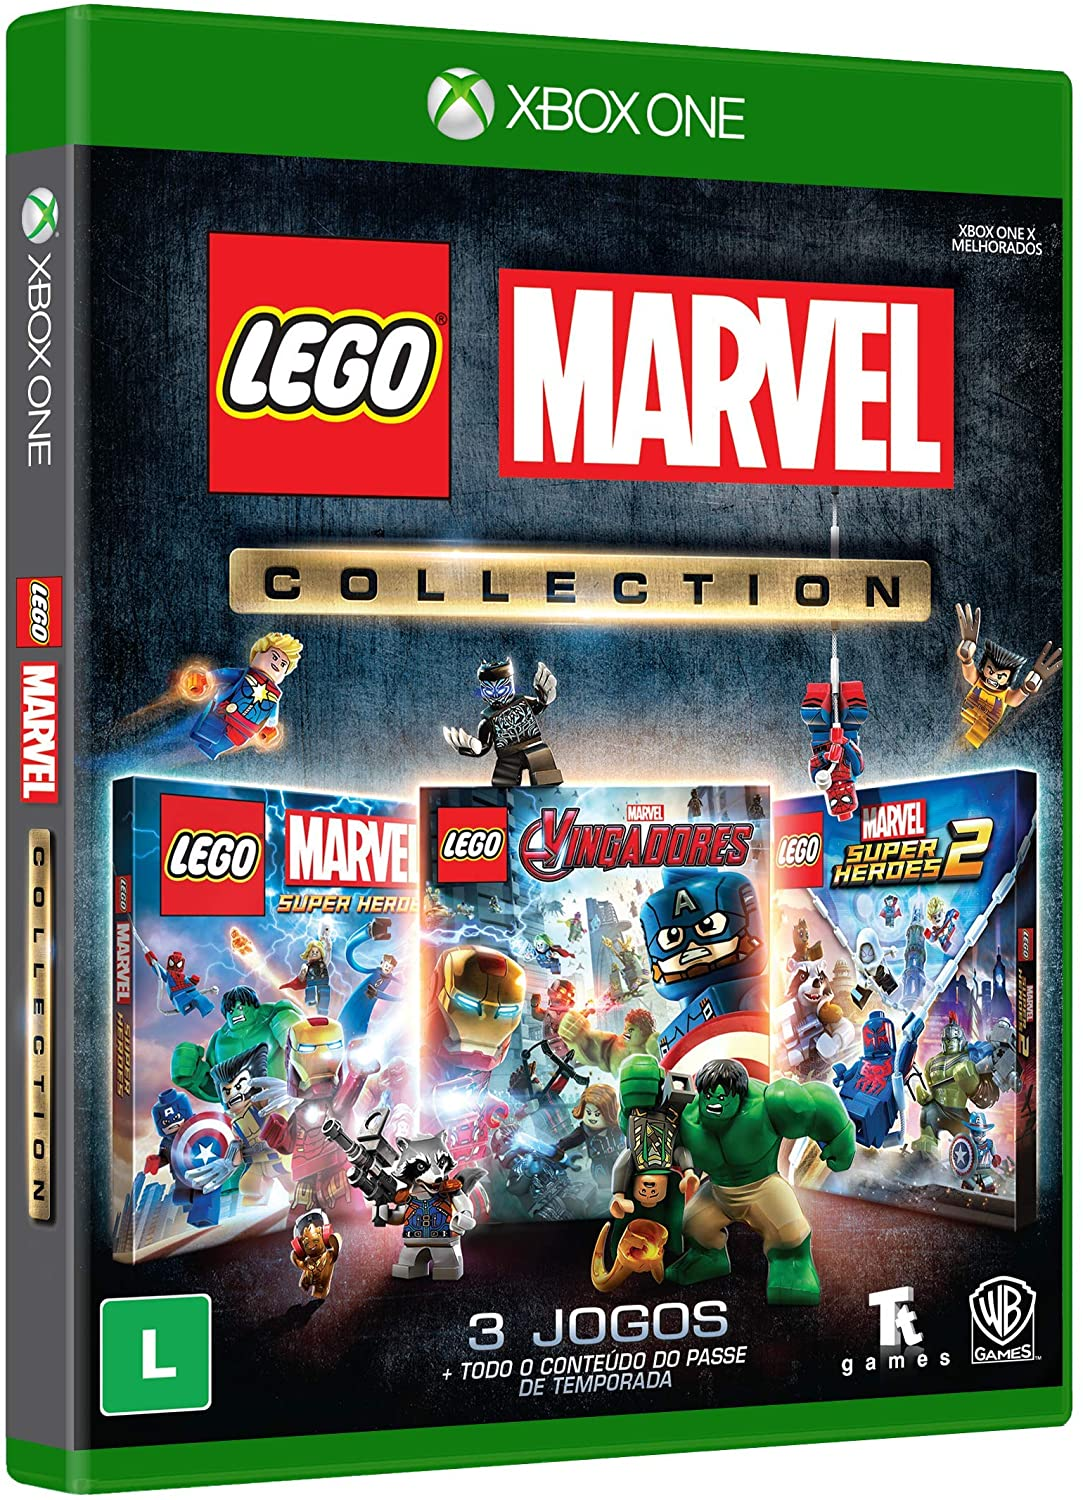 Lego: Marvel Collection - Xbox One